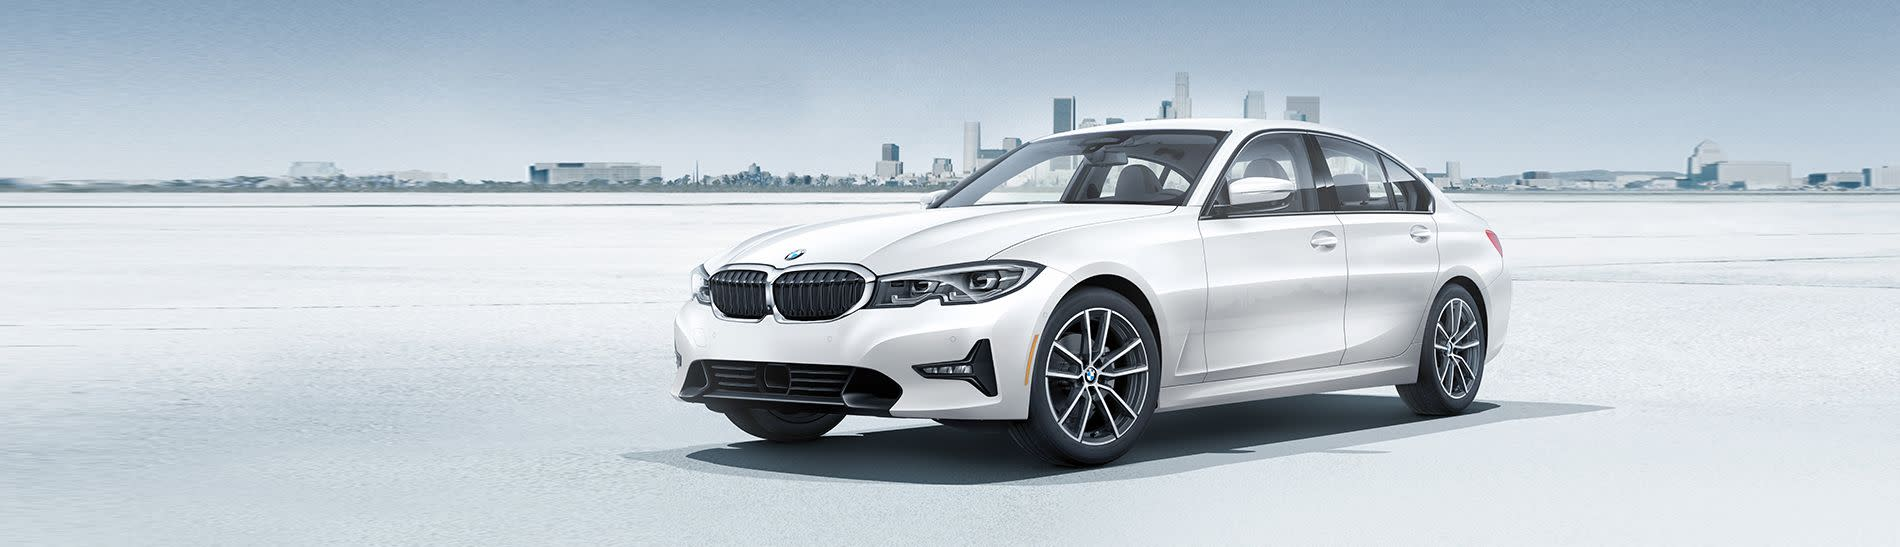 2019 330i xDrive - BMW of Champaign